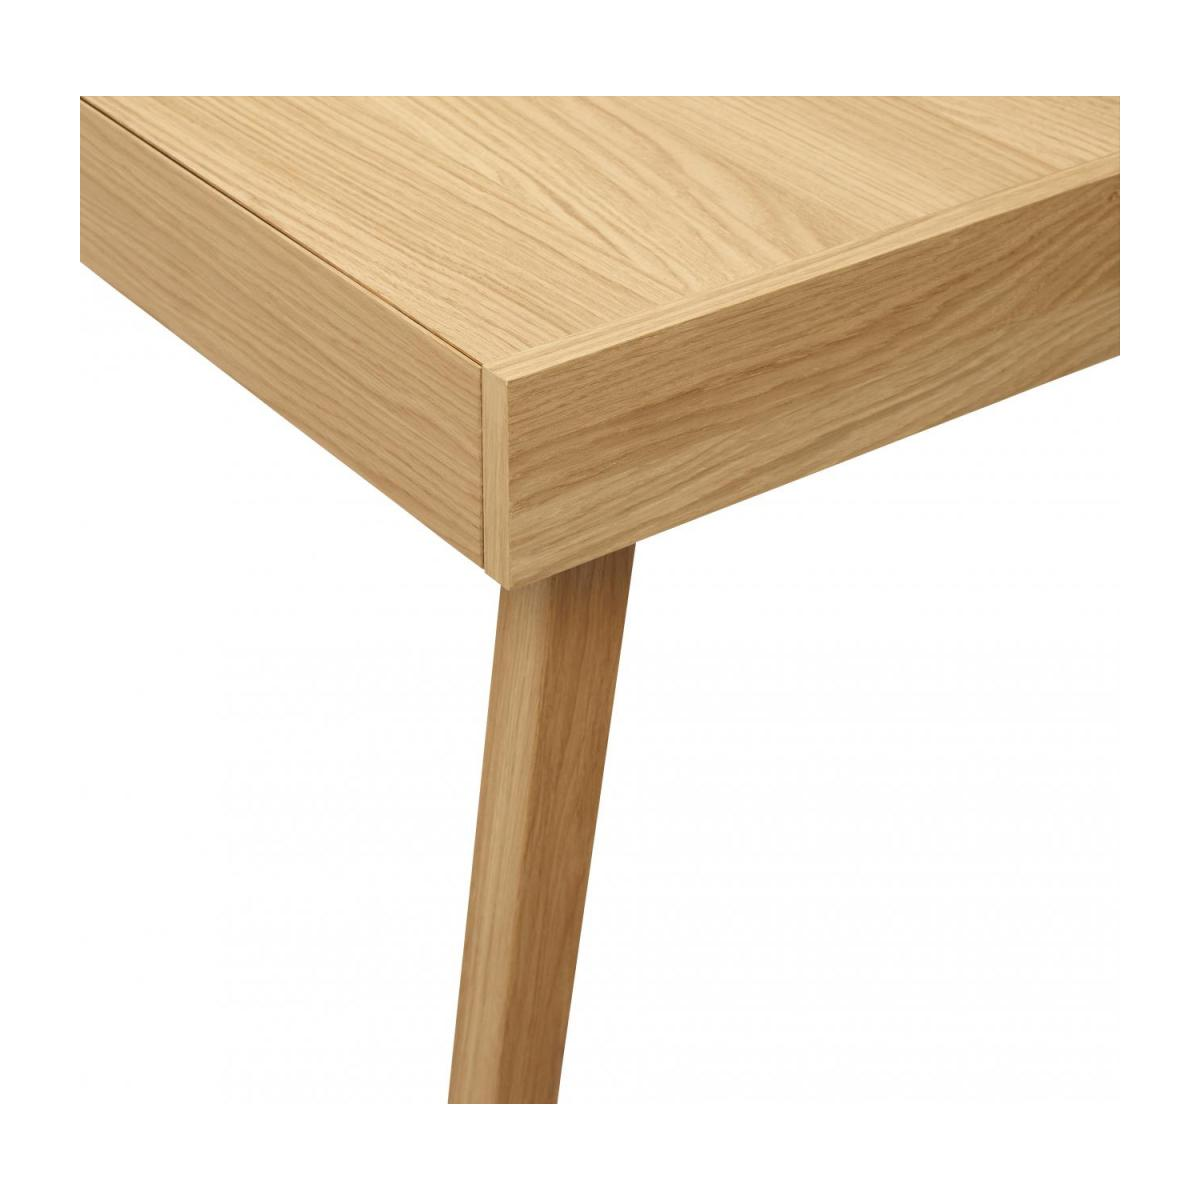 Big oak desk n°10